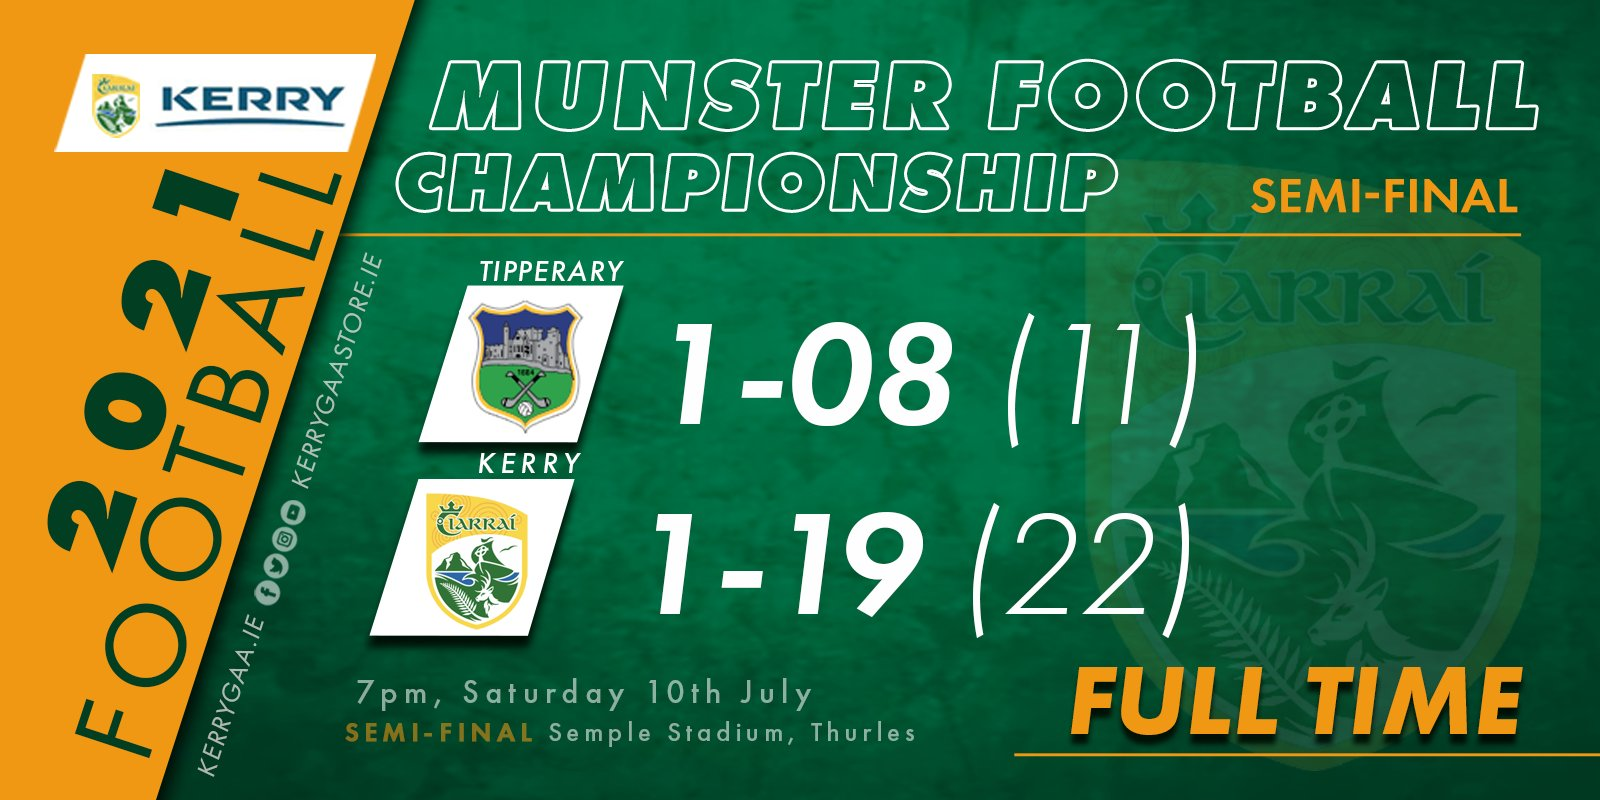 Munster Final awaits for Senior Footballers with semi-final win over Tipperary